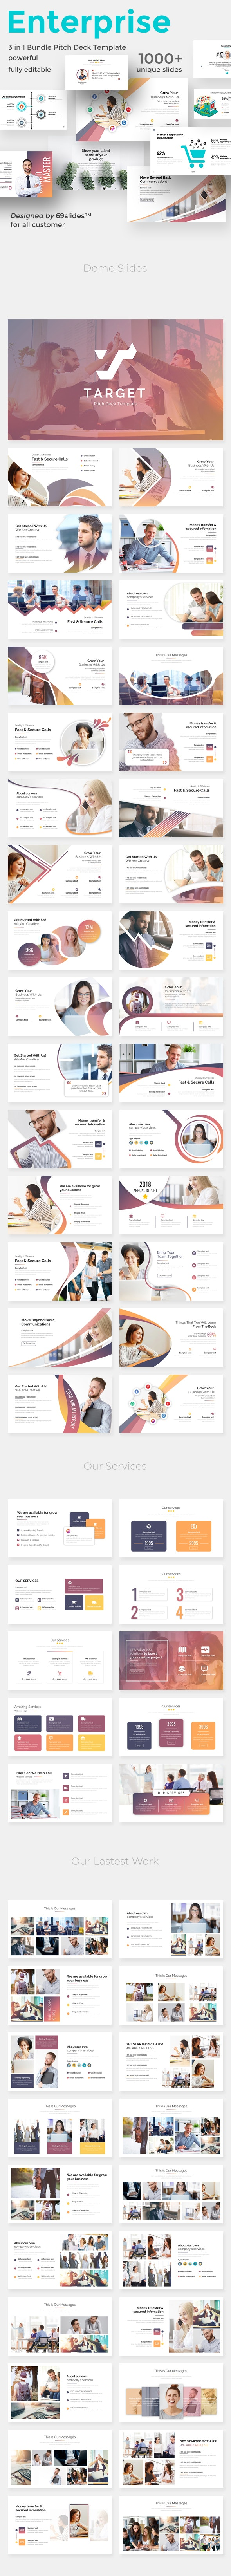 3 in 1 Creative and Business Enterprise Digital Bundle Powerpoint Pitch Deck Temlate - Creative PowerPoint Templates